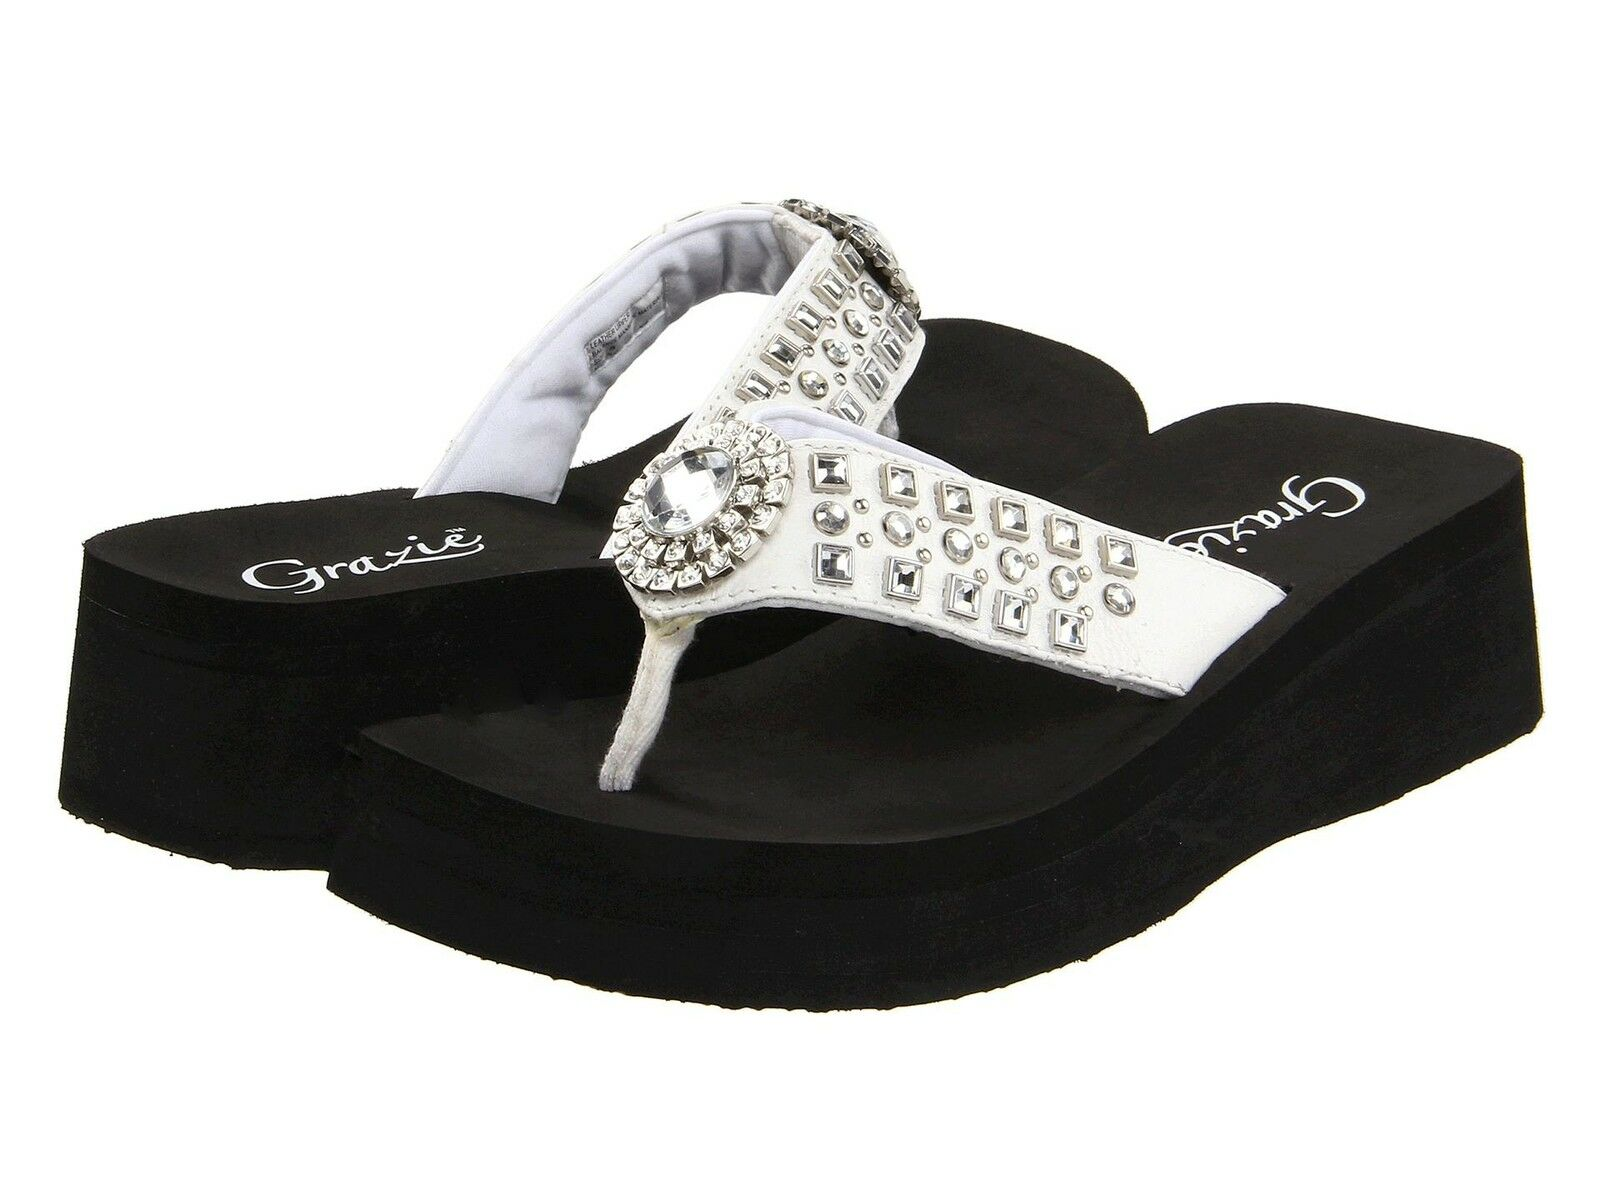 Grazie Tongs Sandales Chaussures Sabina Womans diapositives Bling Strass Blanc NEUF